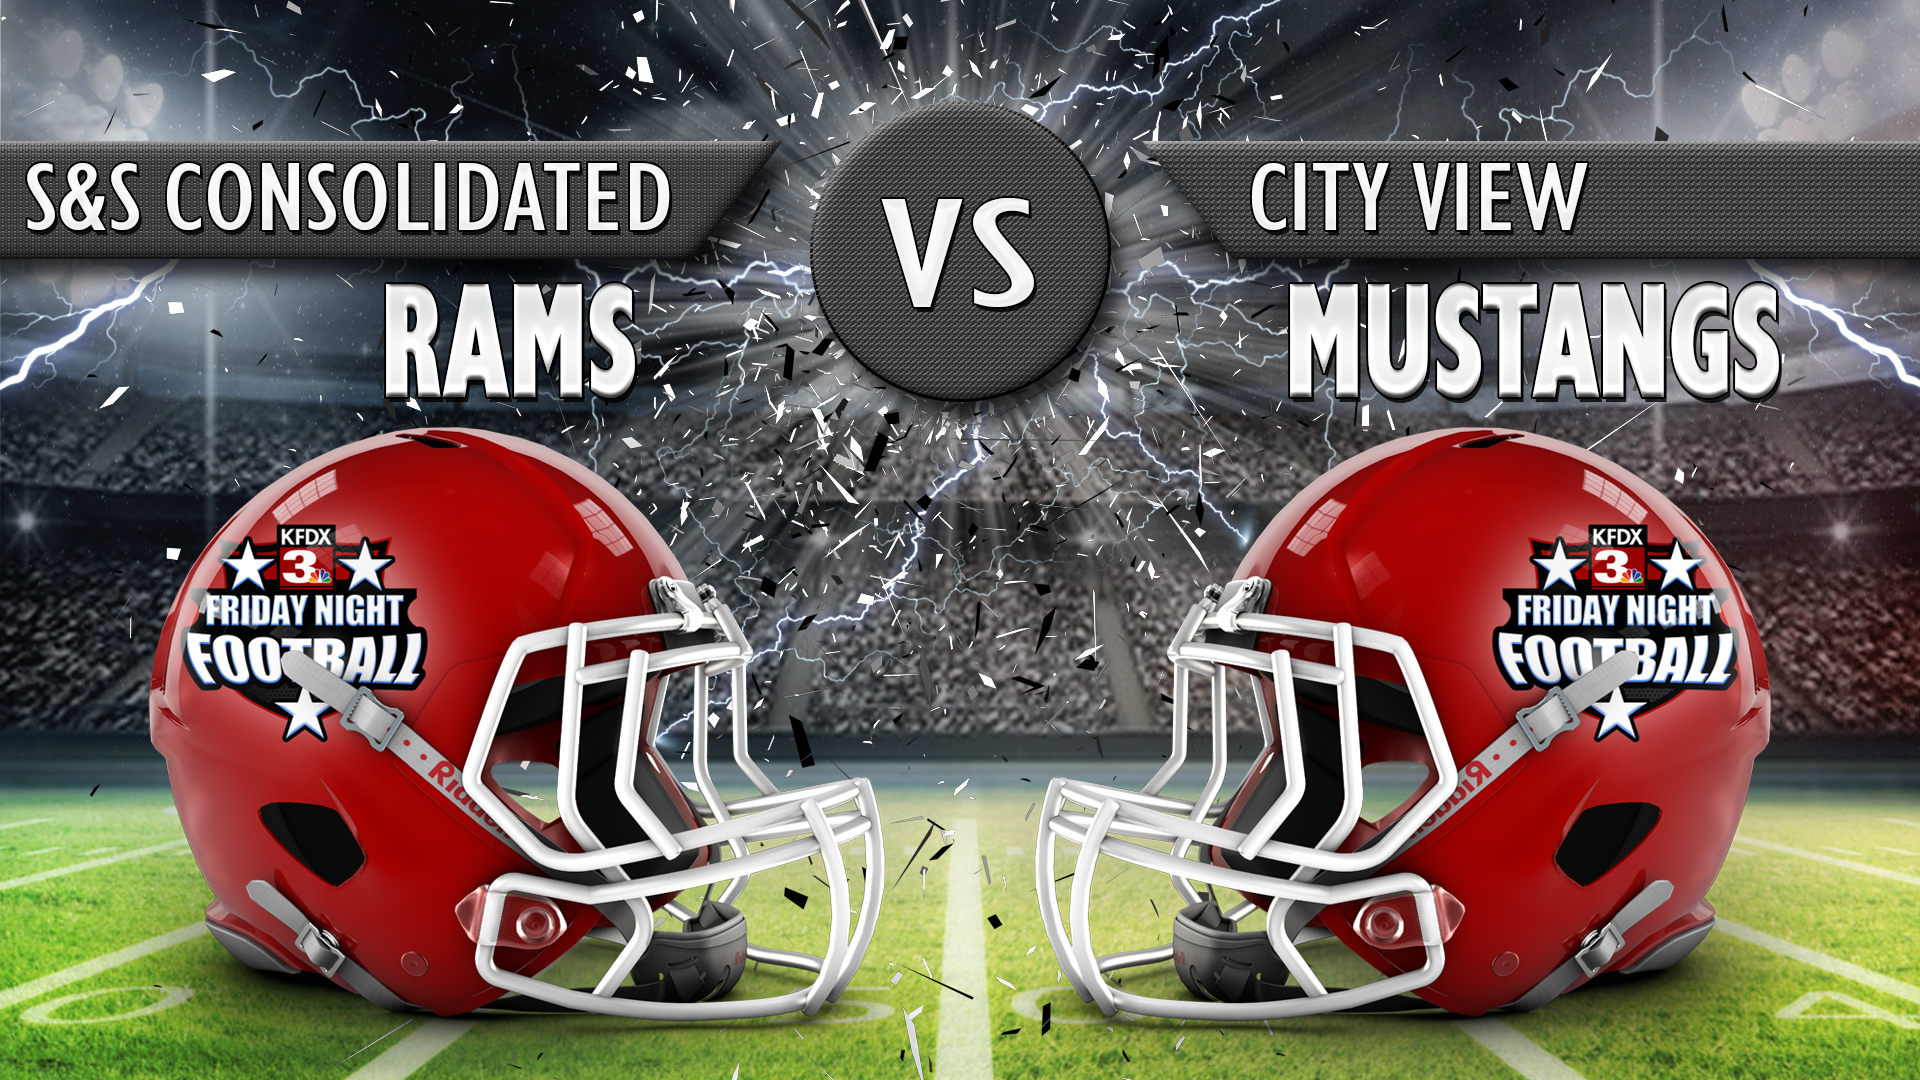 S&S CONSOLIDATED VS CITY VIEW_1538146479772.jpg.jpg